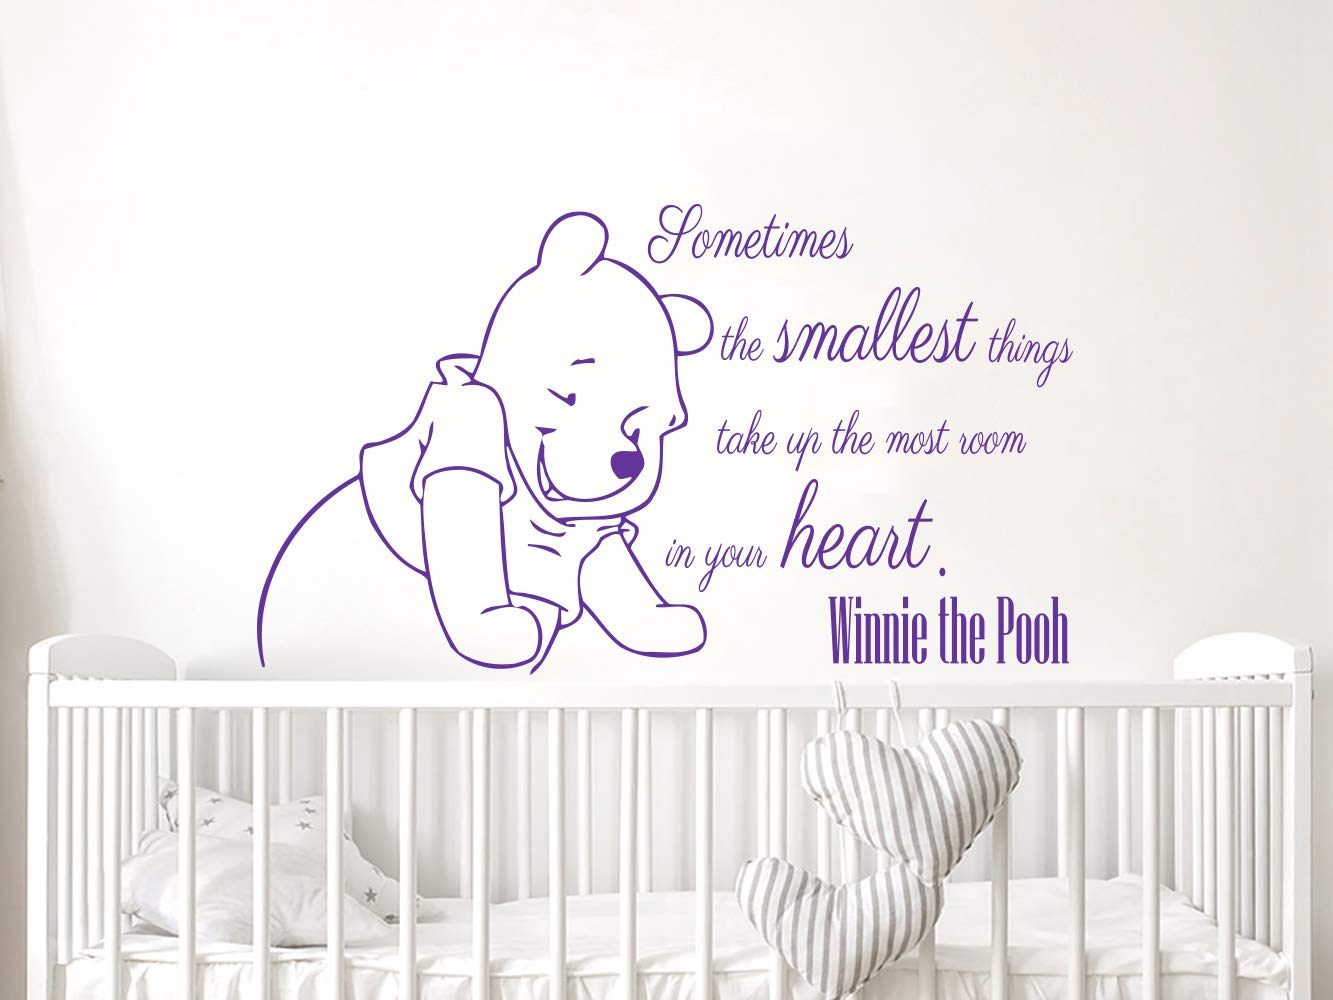 a872a3cc92c0 Wall Decals Quotes Vinyl Sticker Decal Quote Winnie the Pooh Sometimes the  smallest things take Nursery Baby Room Kids Boys Girls Home Decor Bedroom  Art ...